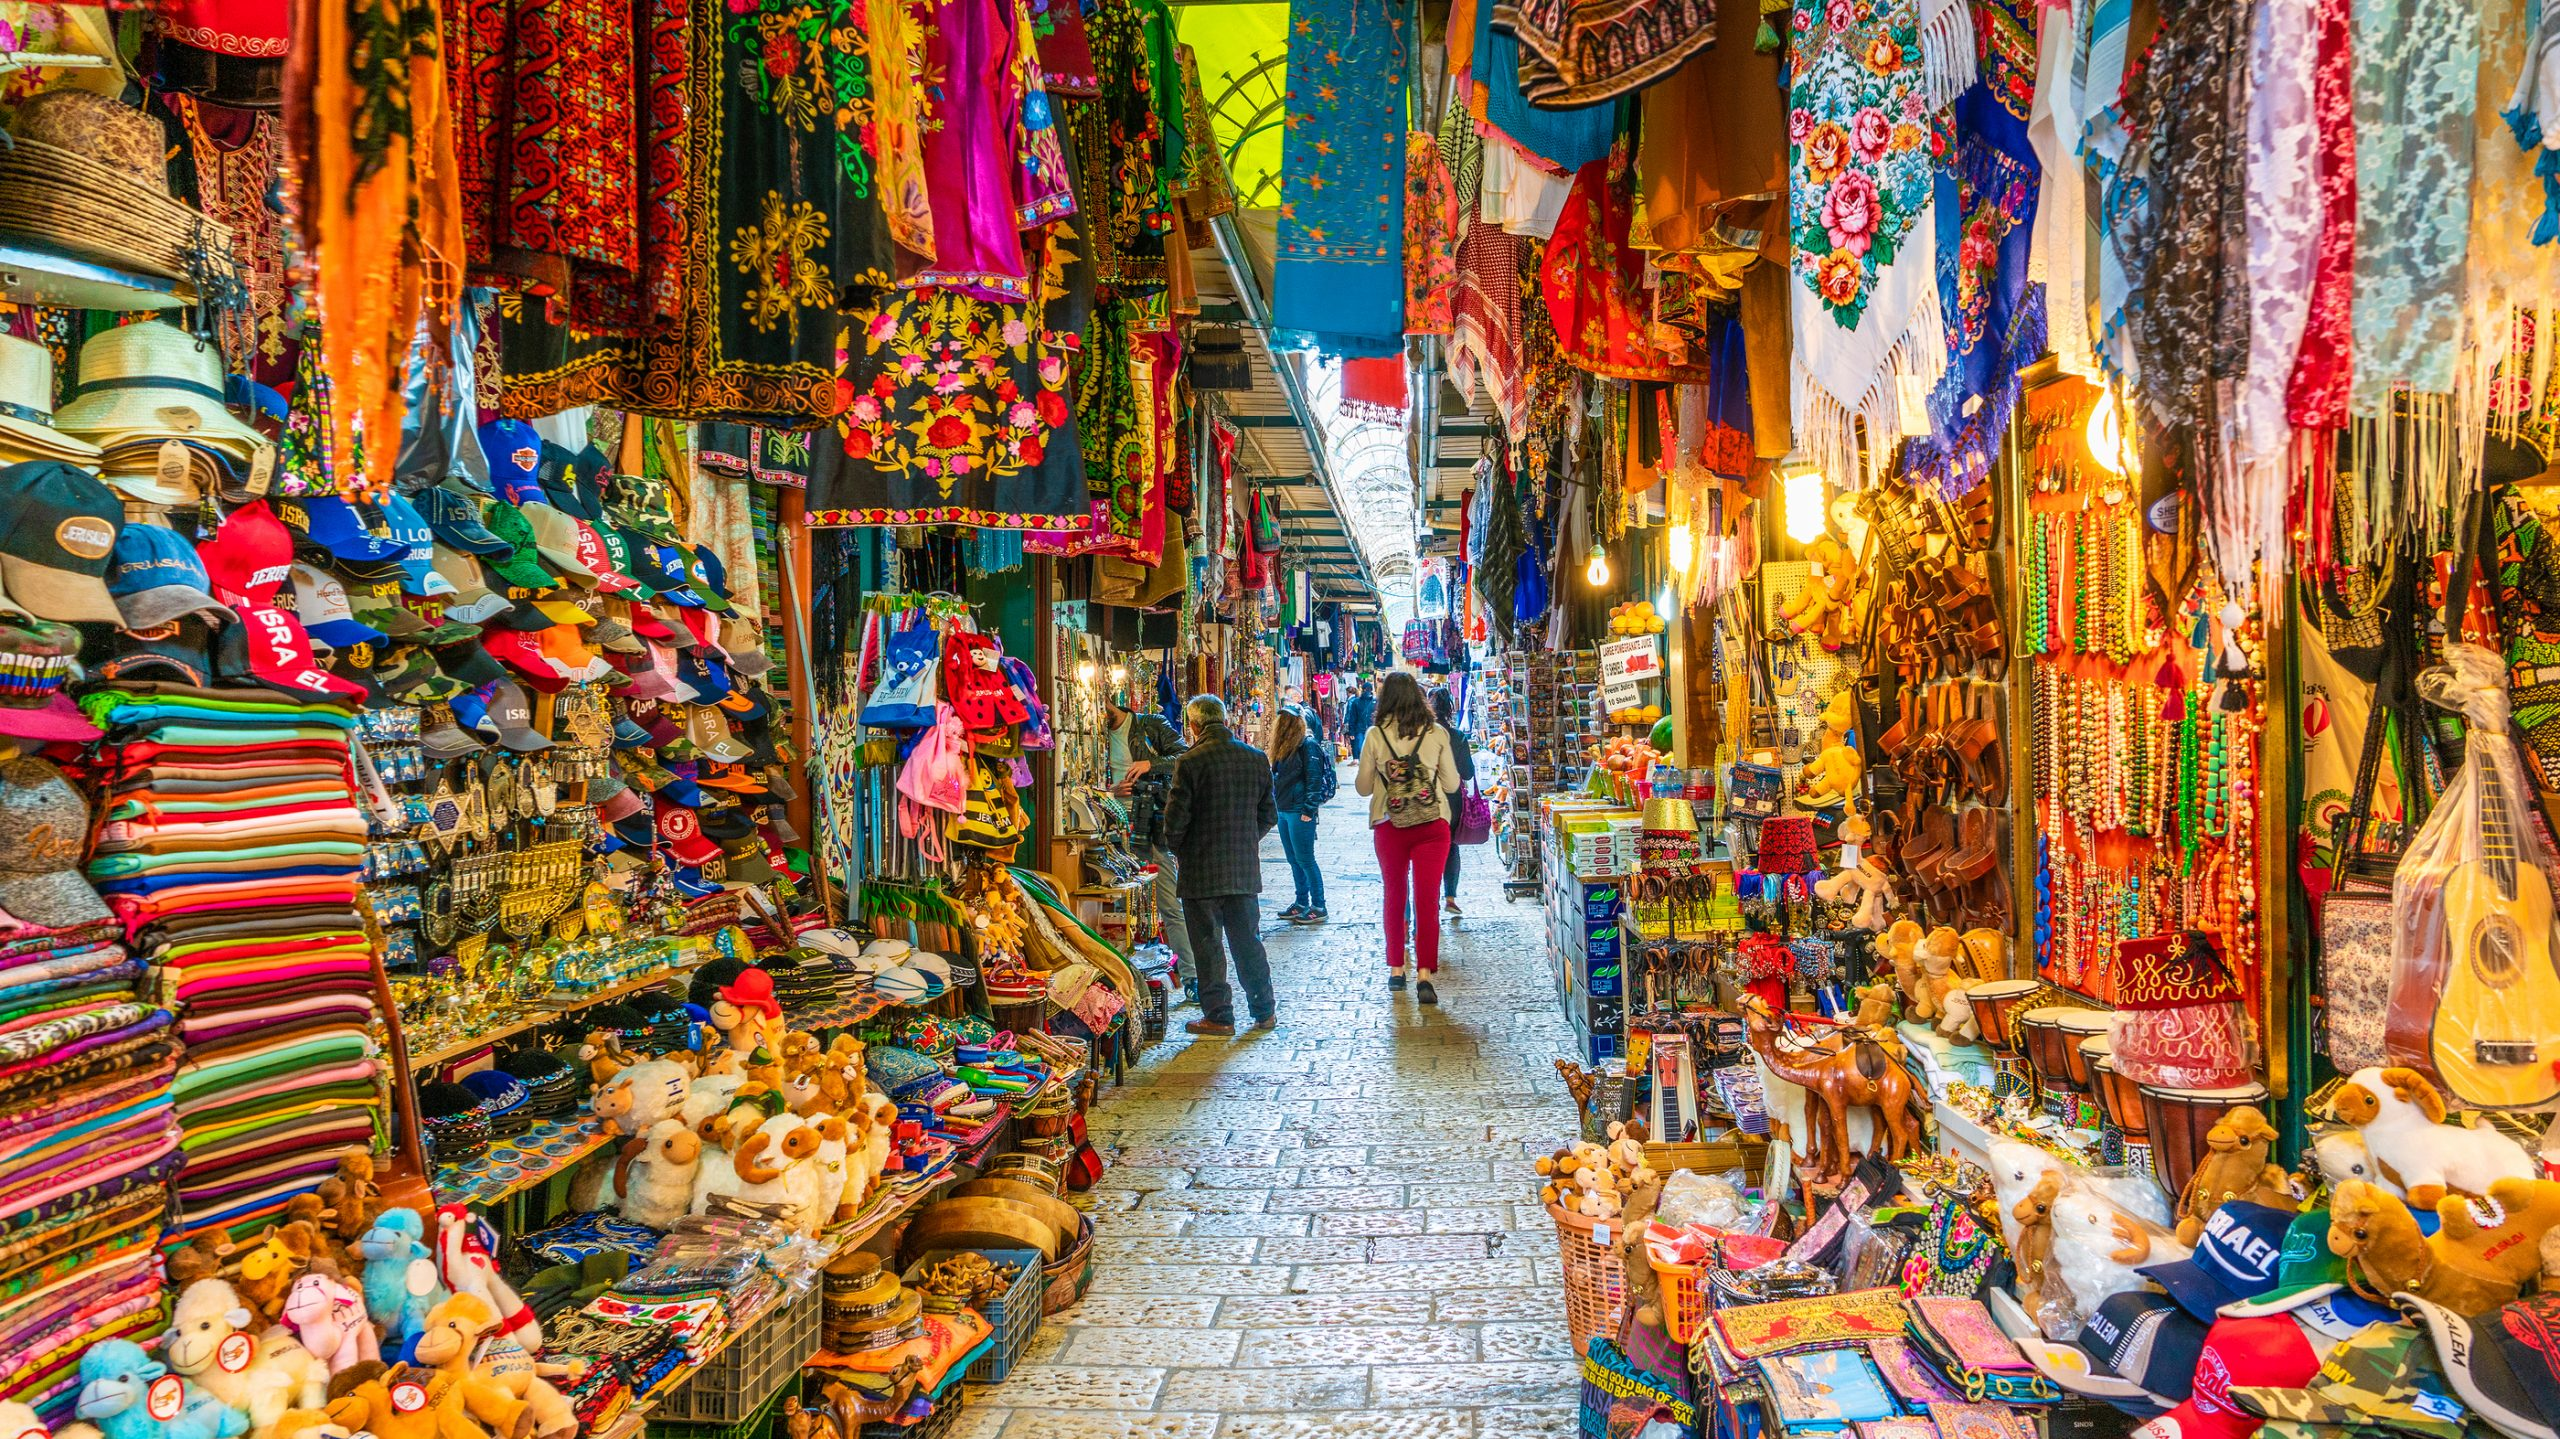 The market in the old city of Jerusalem, Israel